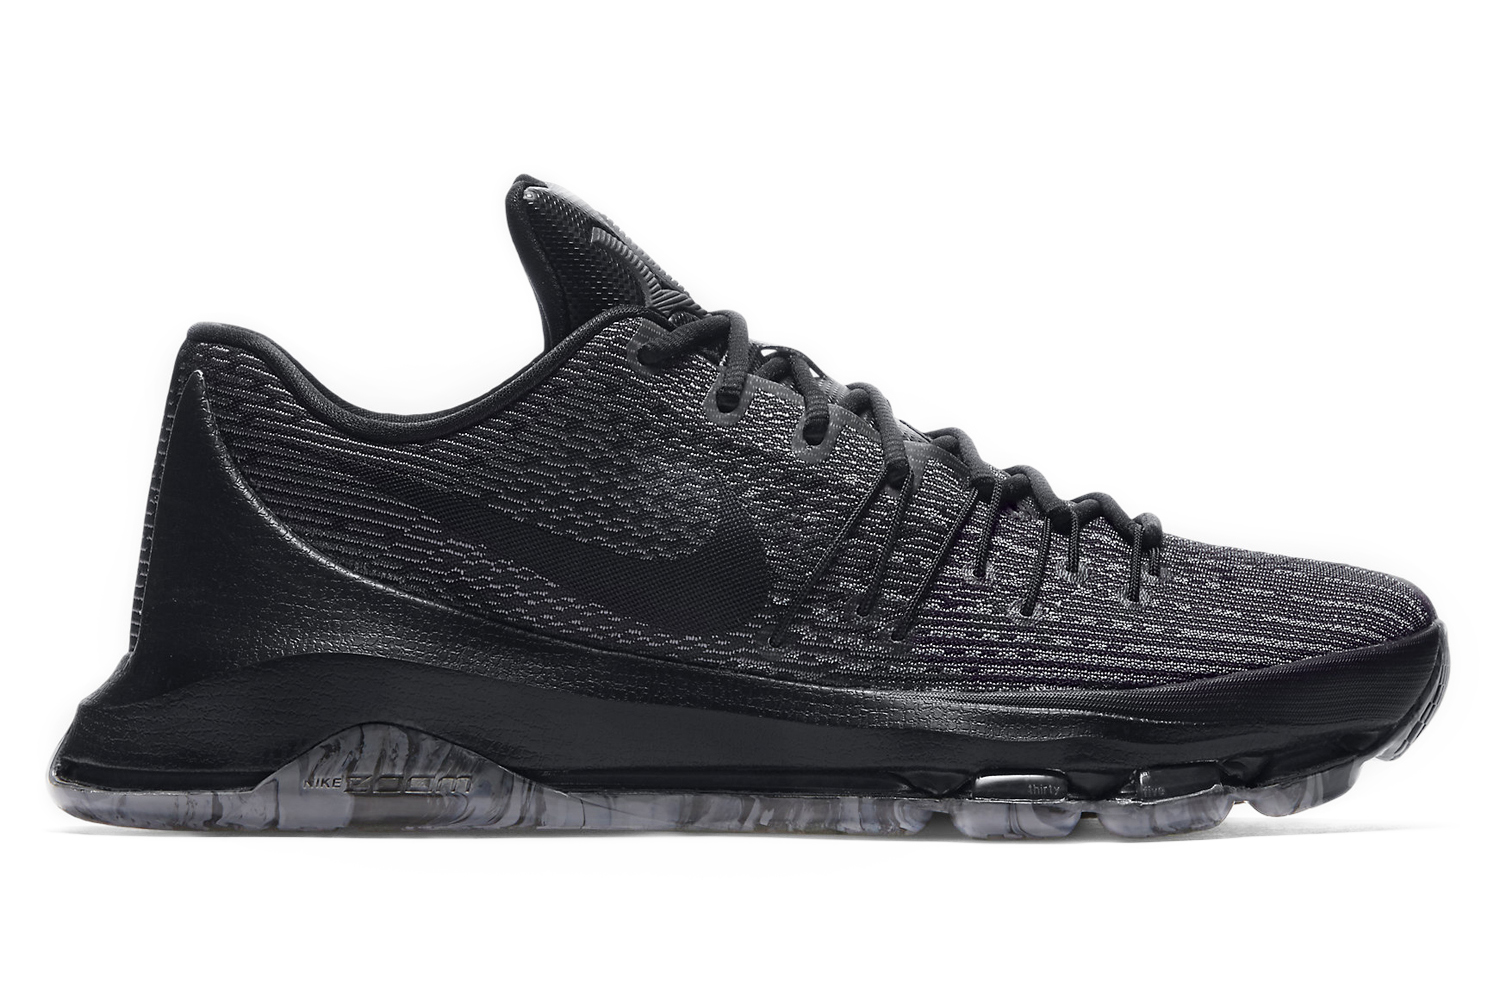 """Nike's KD 8 Gets the """"Blackout"""" Treatment"""